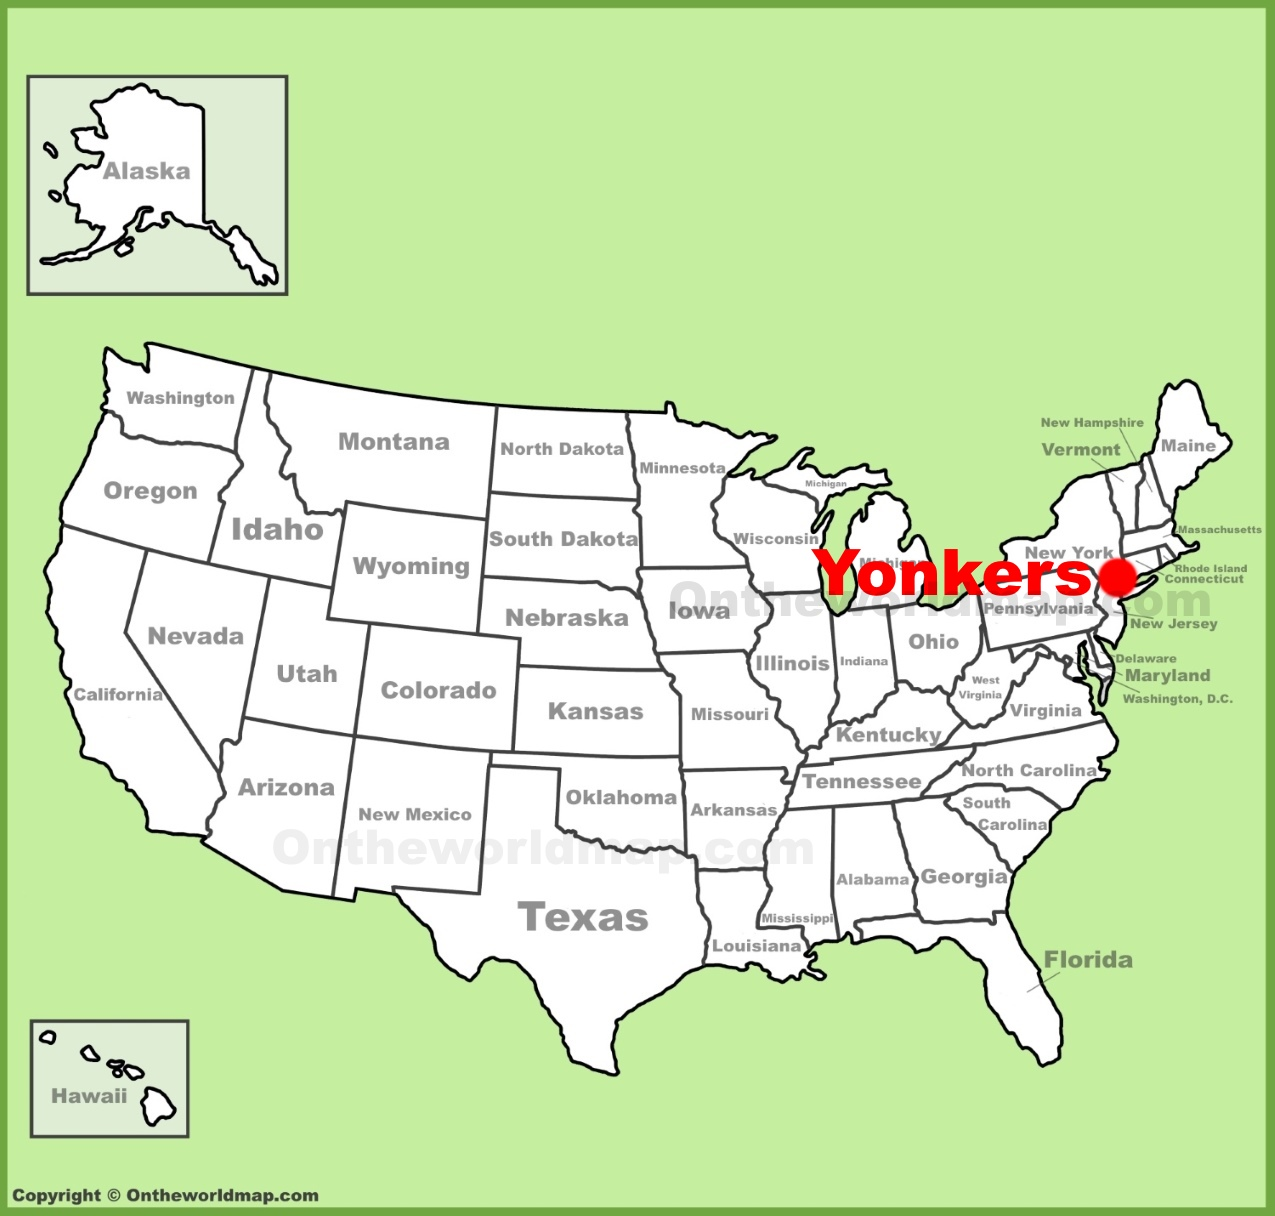 Yonkers location on the US Map